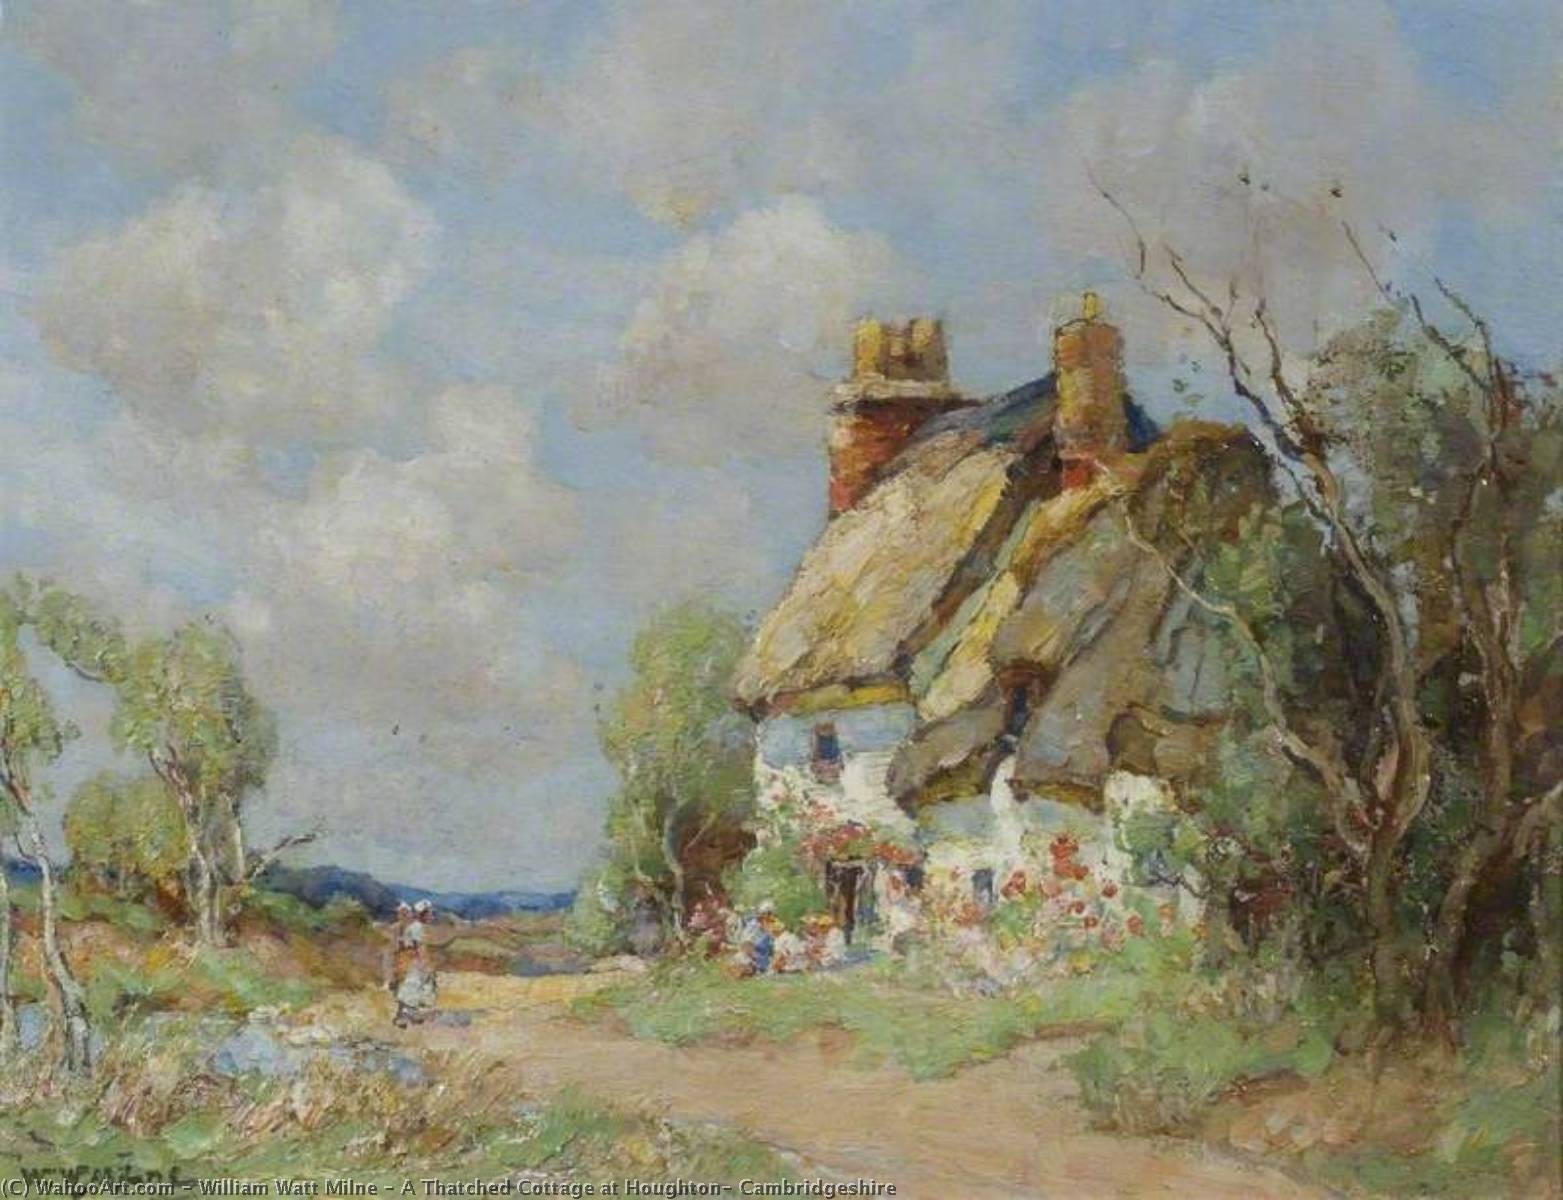 A Thatched Cottage at Houghton, Cambridgeshire by William Watt Milne | Reproductions William Watt Milne | WahooArt.com